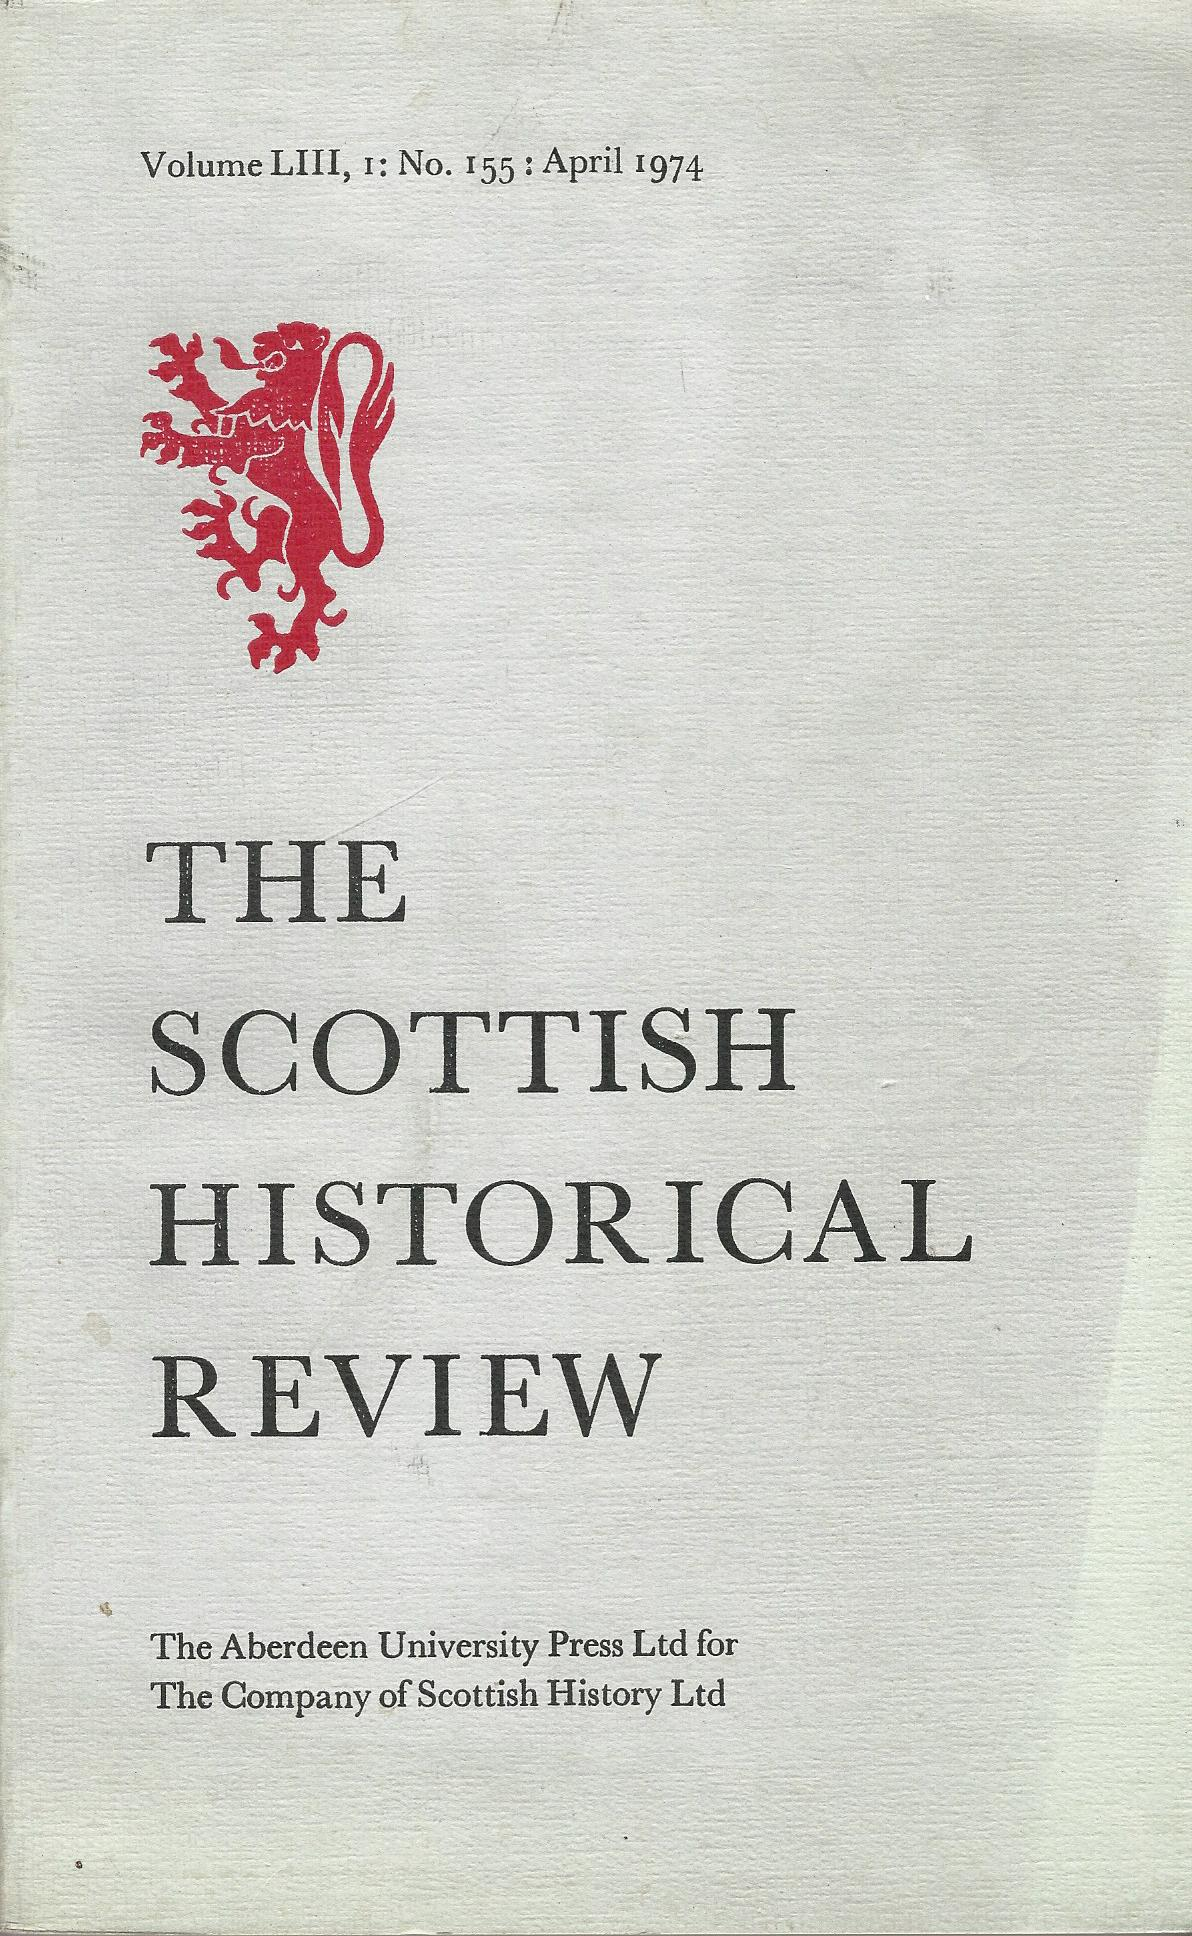 Image for The Scottish Historical Review Volume LII, 1: No. 155: April 1974